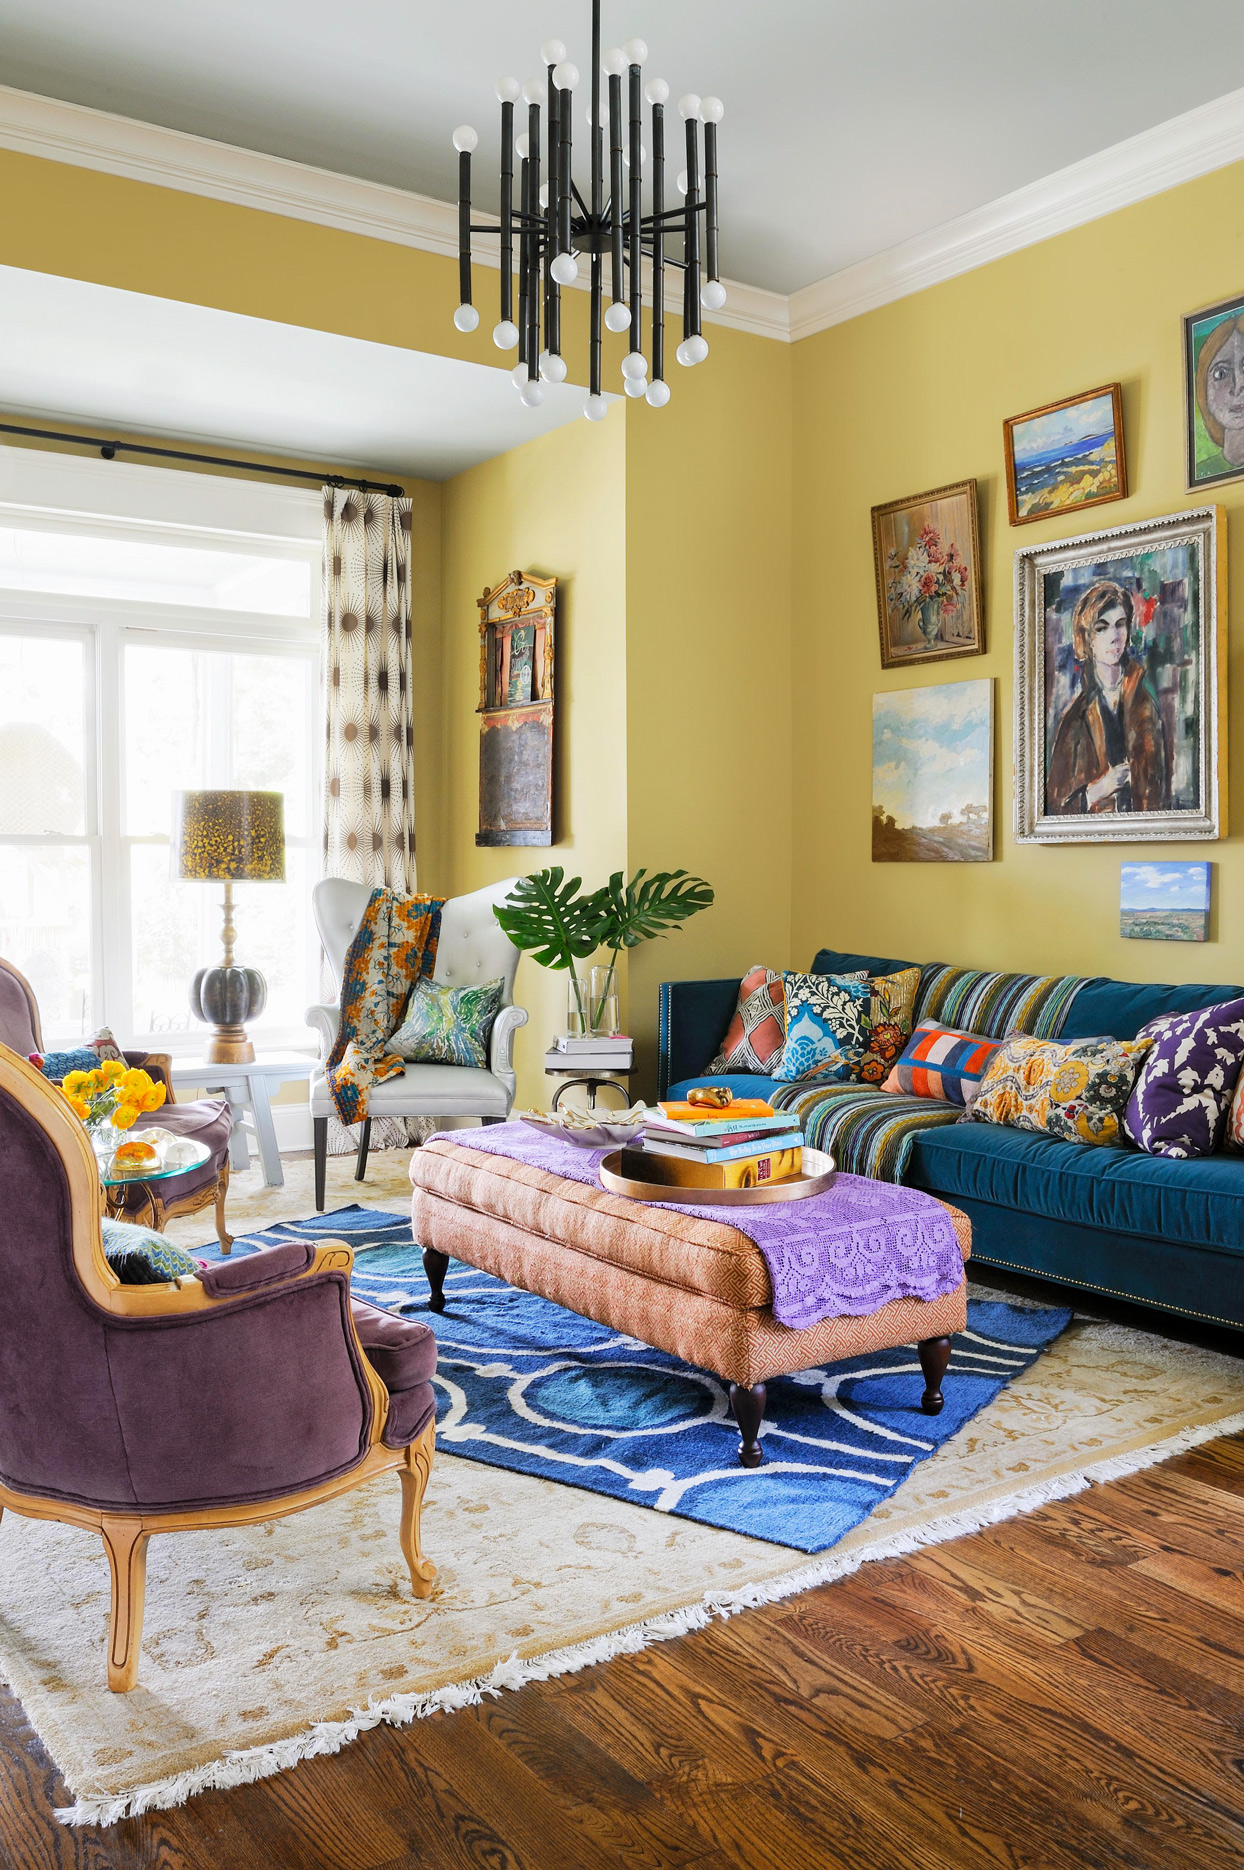 3 Yellow Living Room Ideas for a Bright, Happy Space  Better